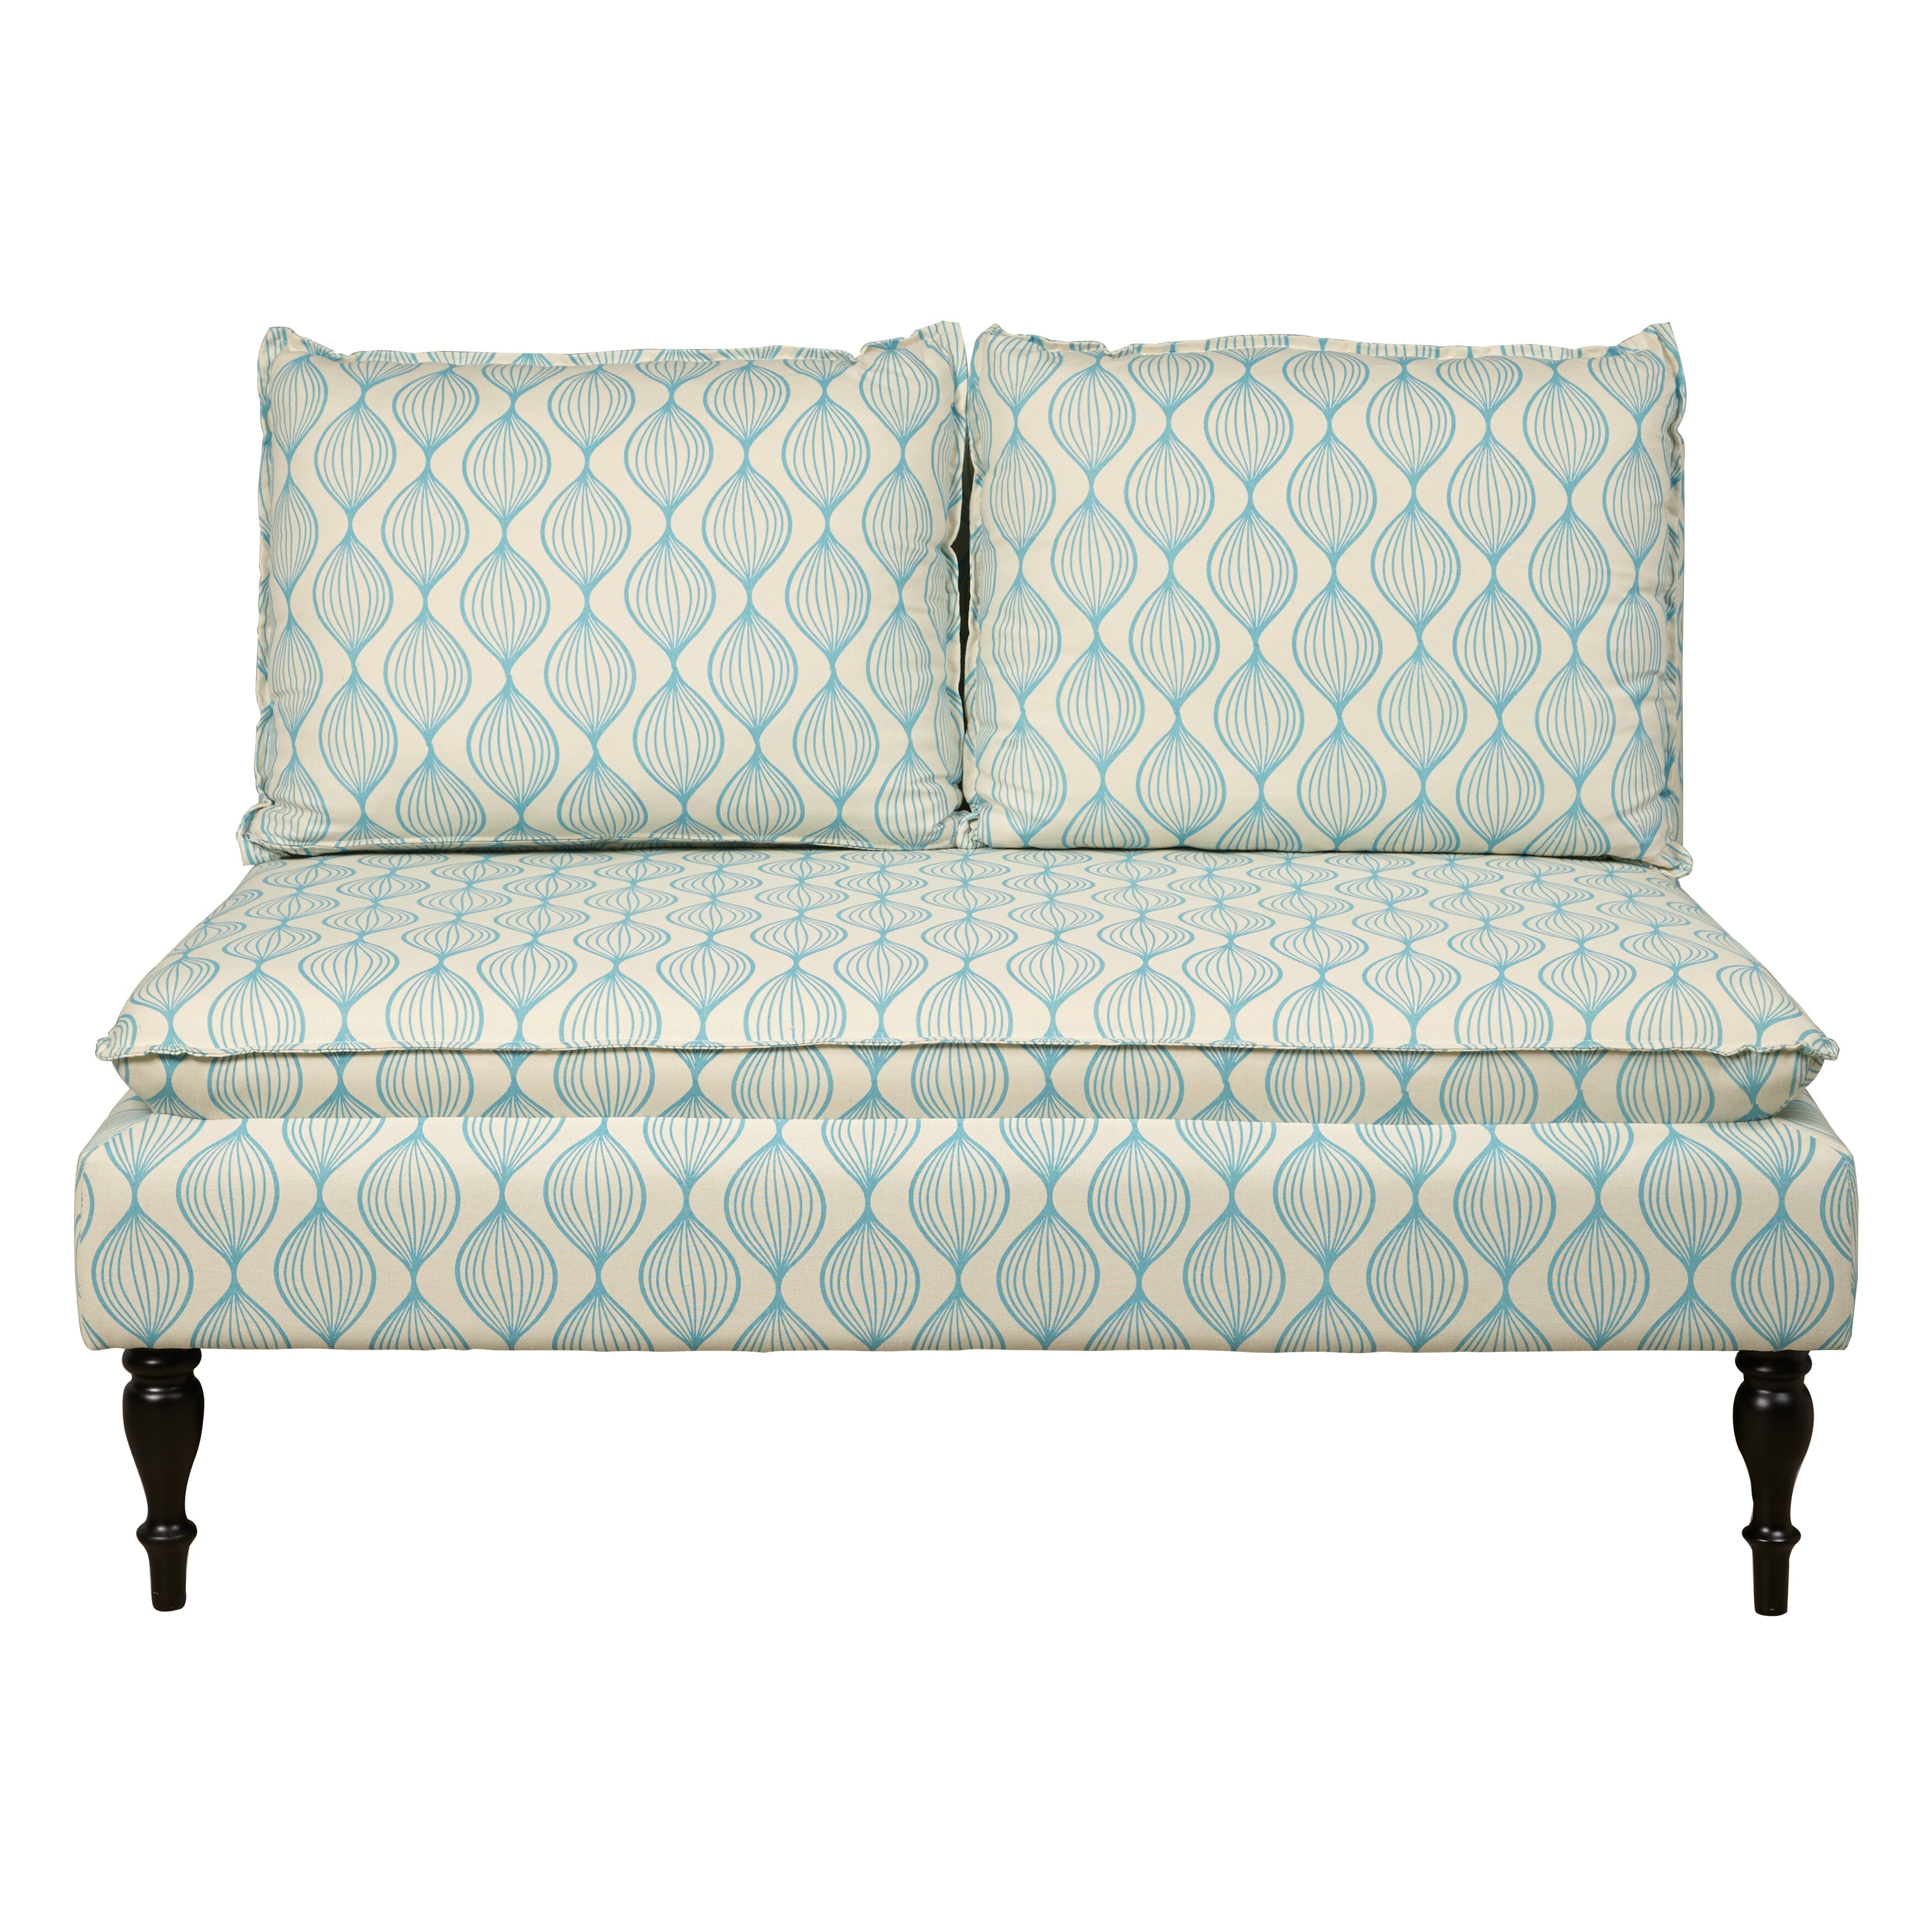 PRI Upholstered Graphic Print Banquette Sofa & Reviews